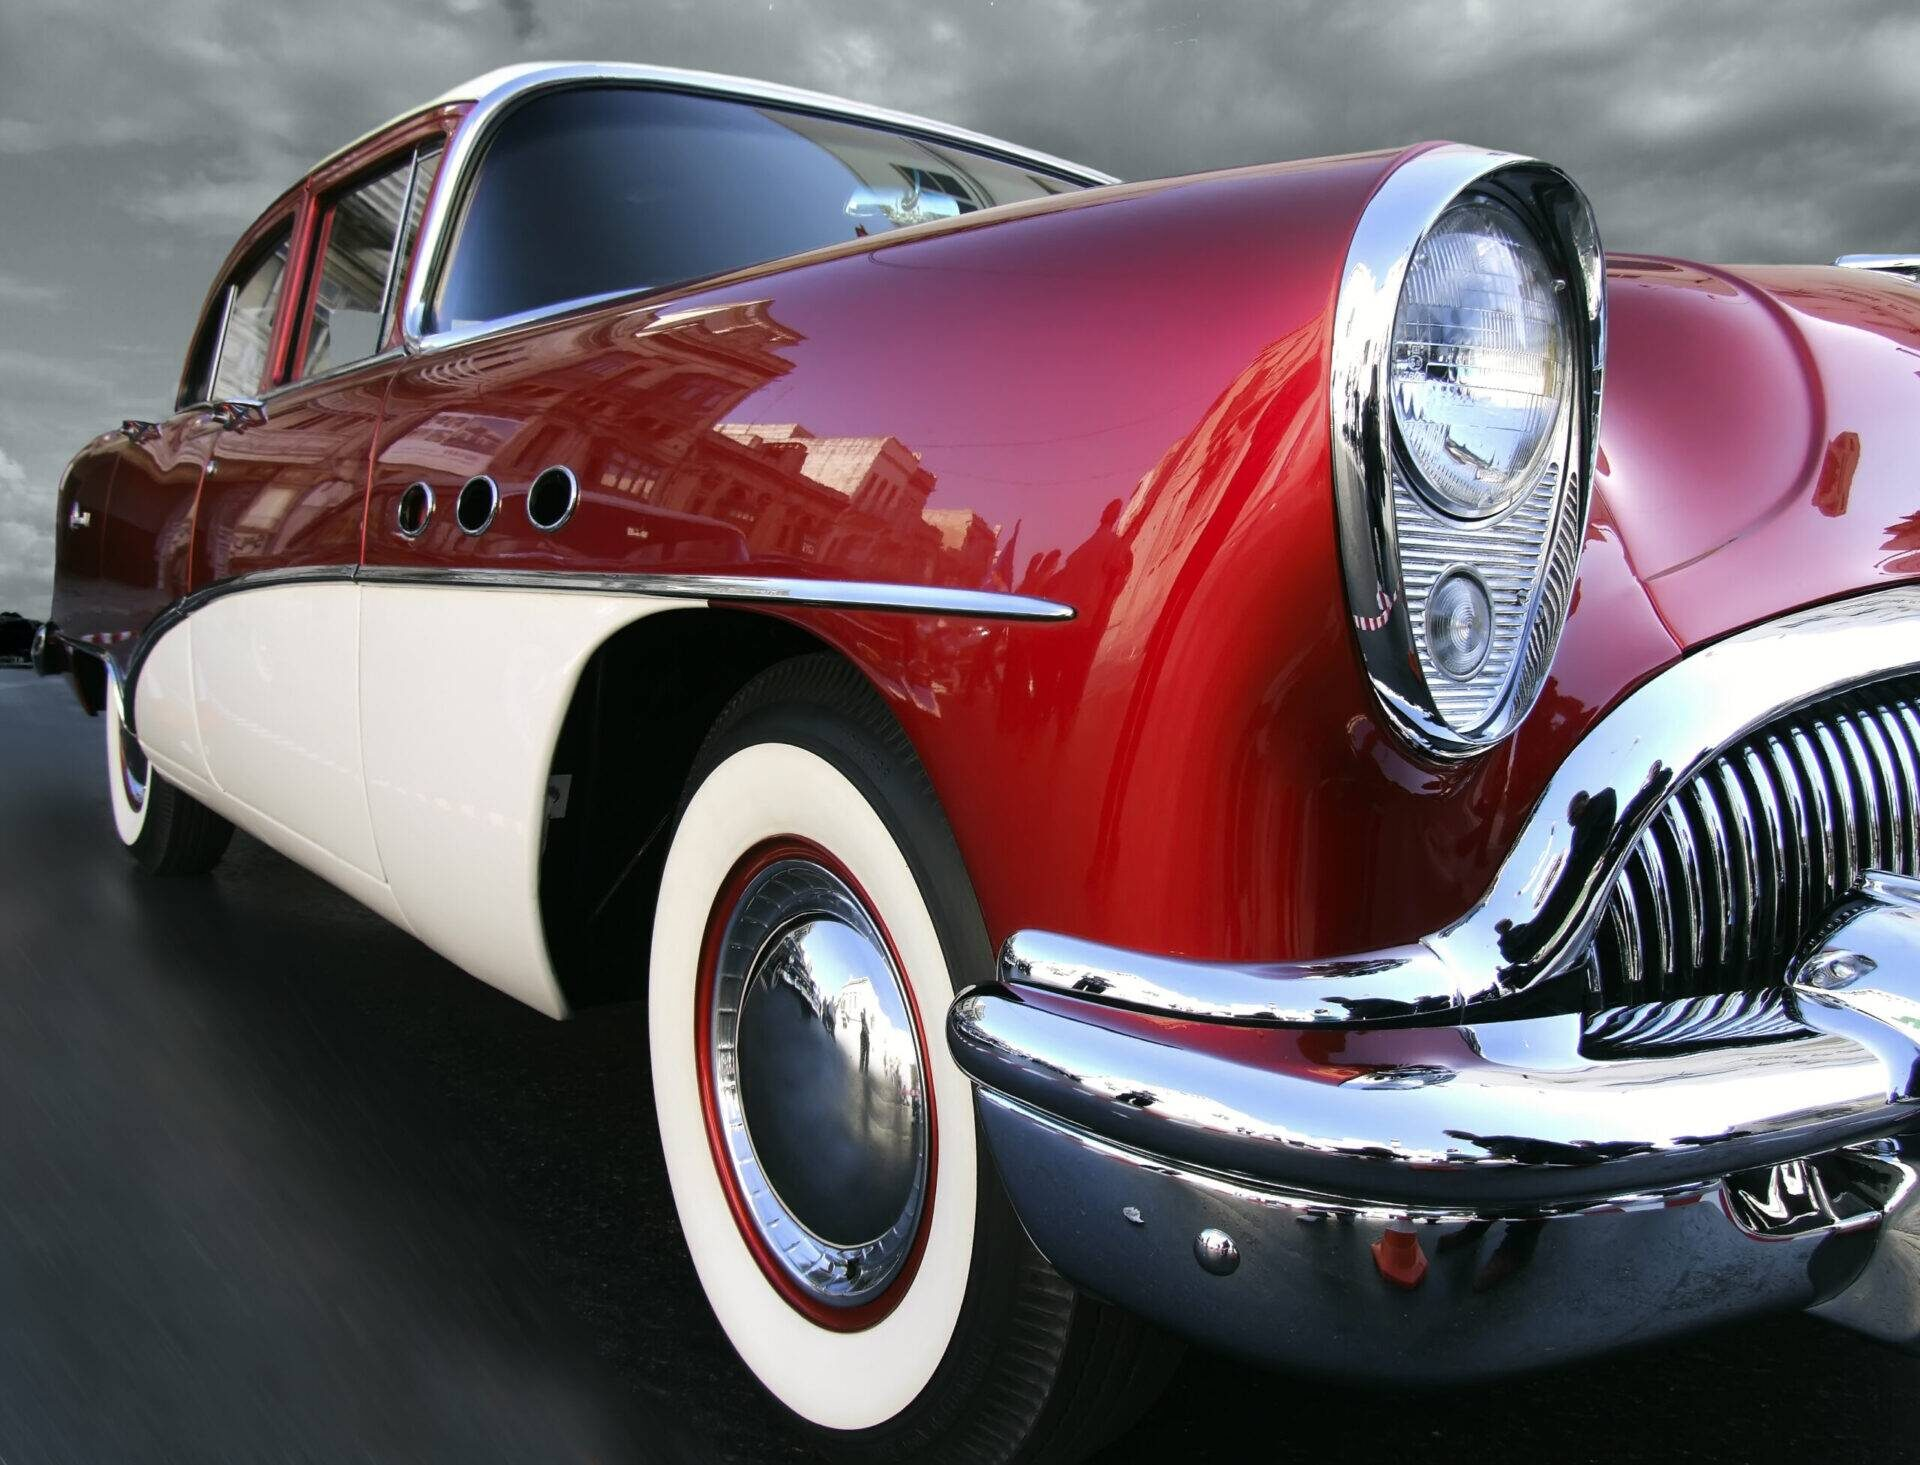 Photograph of red American car featuring headlight and wheel